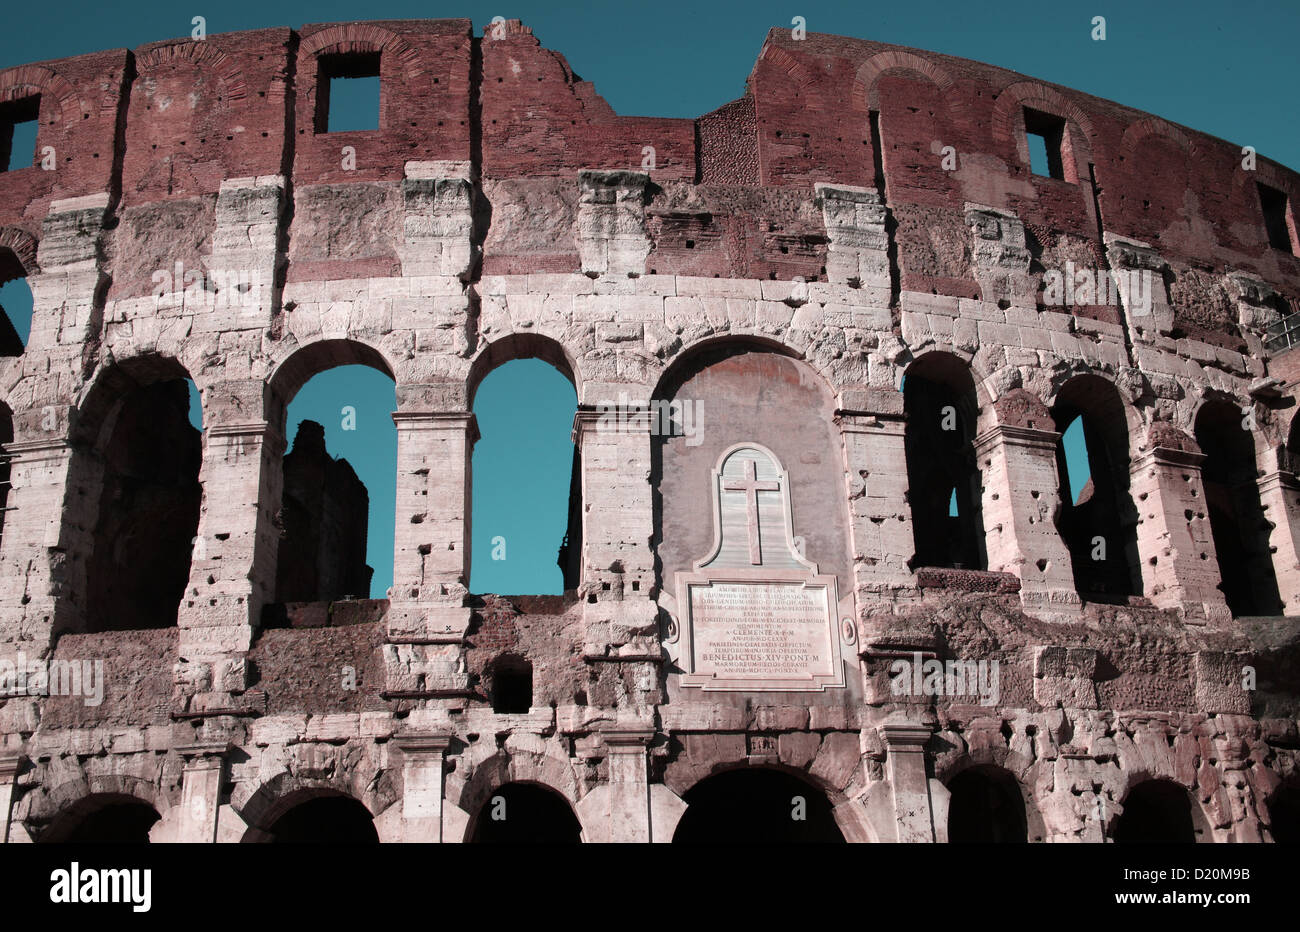 Detail of the Colosseum Rome Italy - Iconic symbol of Imperial Rome - Stock Image